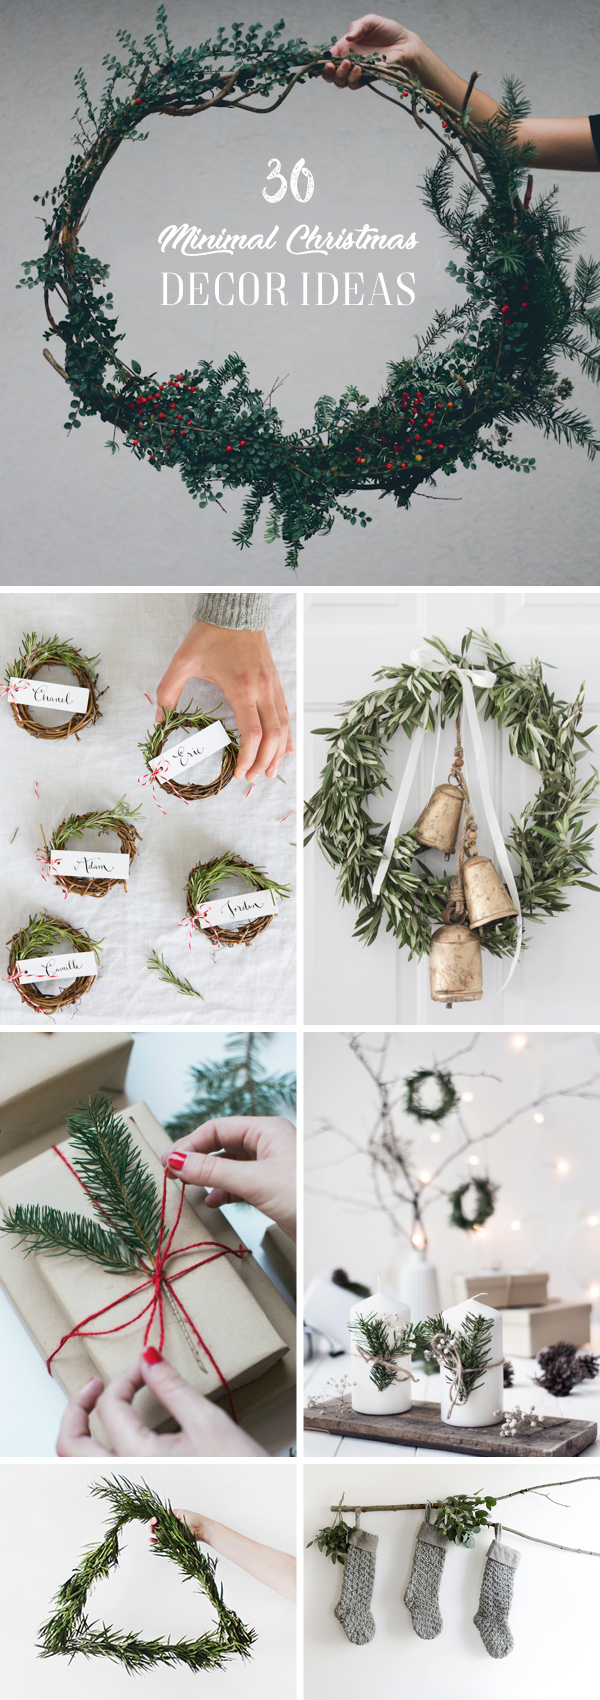 30 Minimal Christmas Decor Ideas for The Subtle-Lovers Out There!